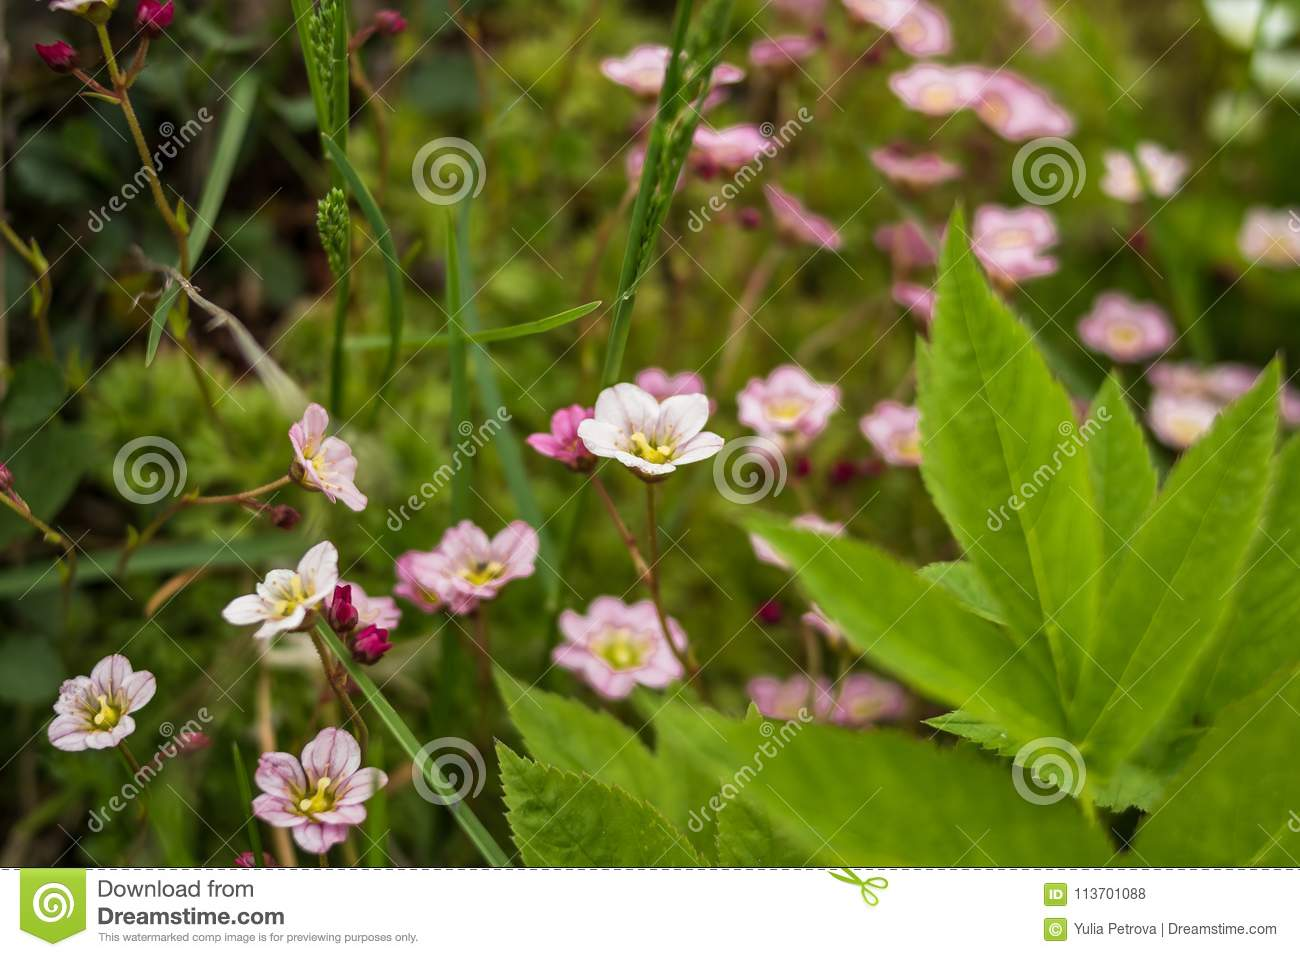 Small Pink White Spring Flowers With Leaves In Green Grass Spring